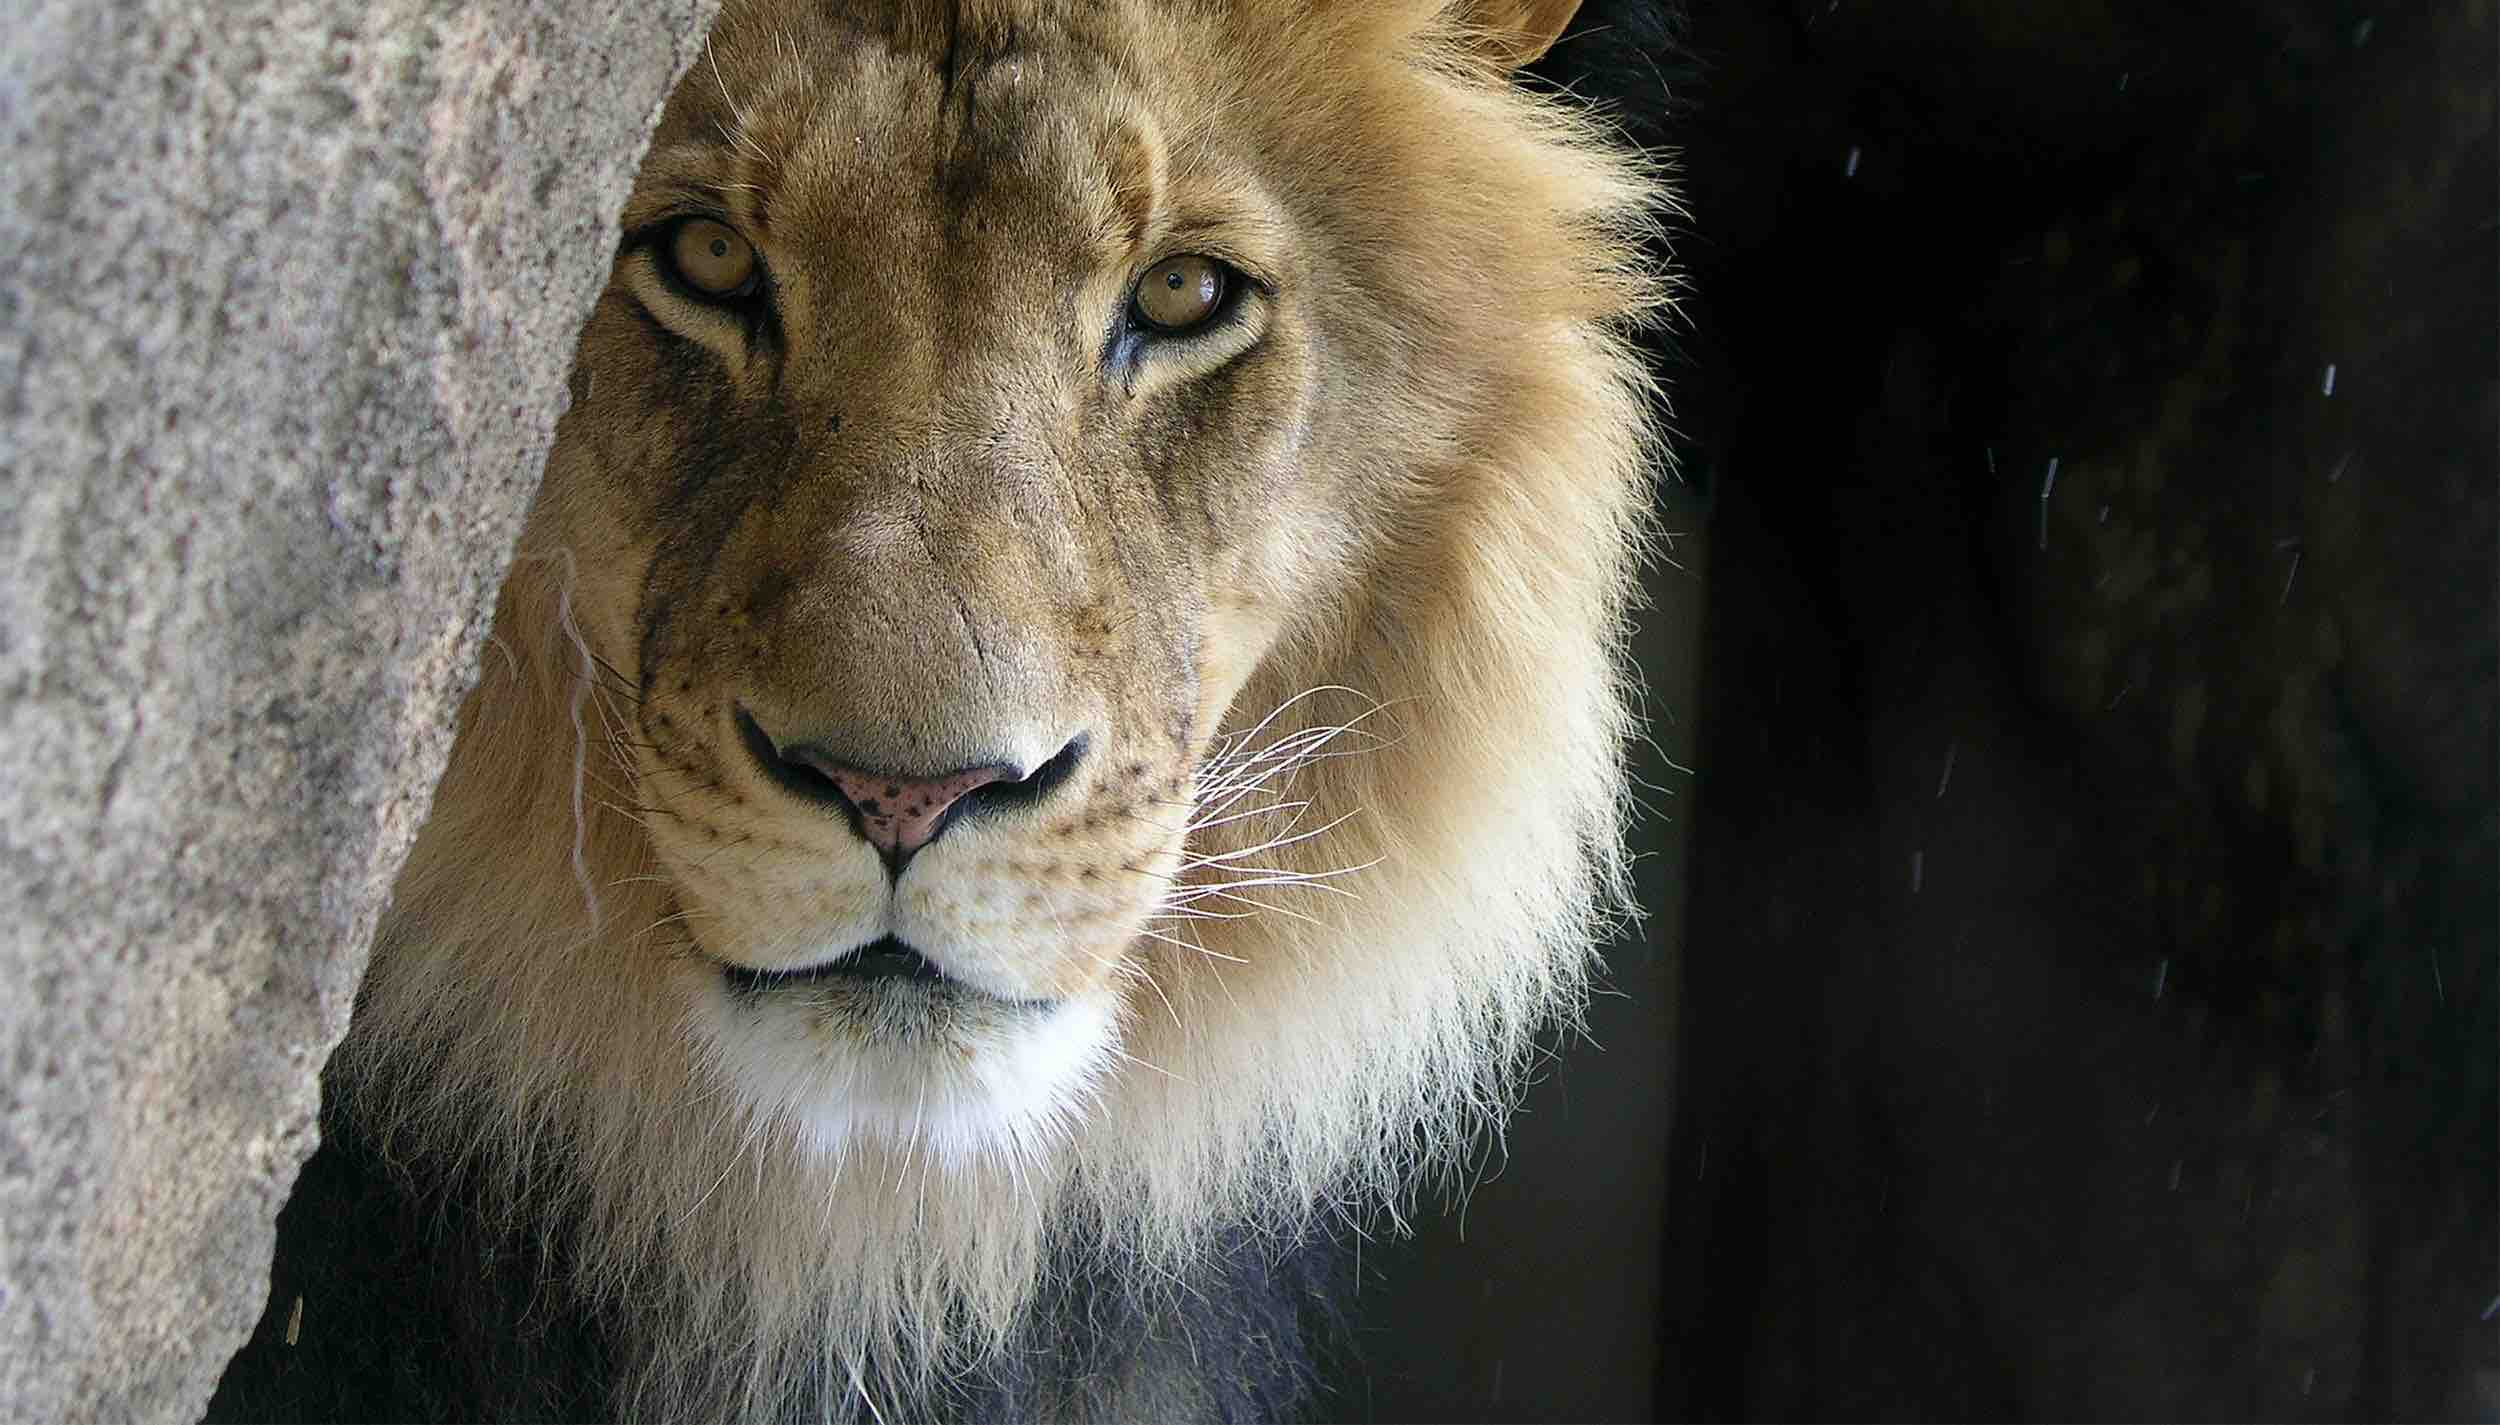 Denver Zoo visit things to do in downtown denver lion - ray-grau-unsplash